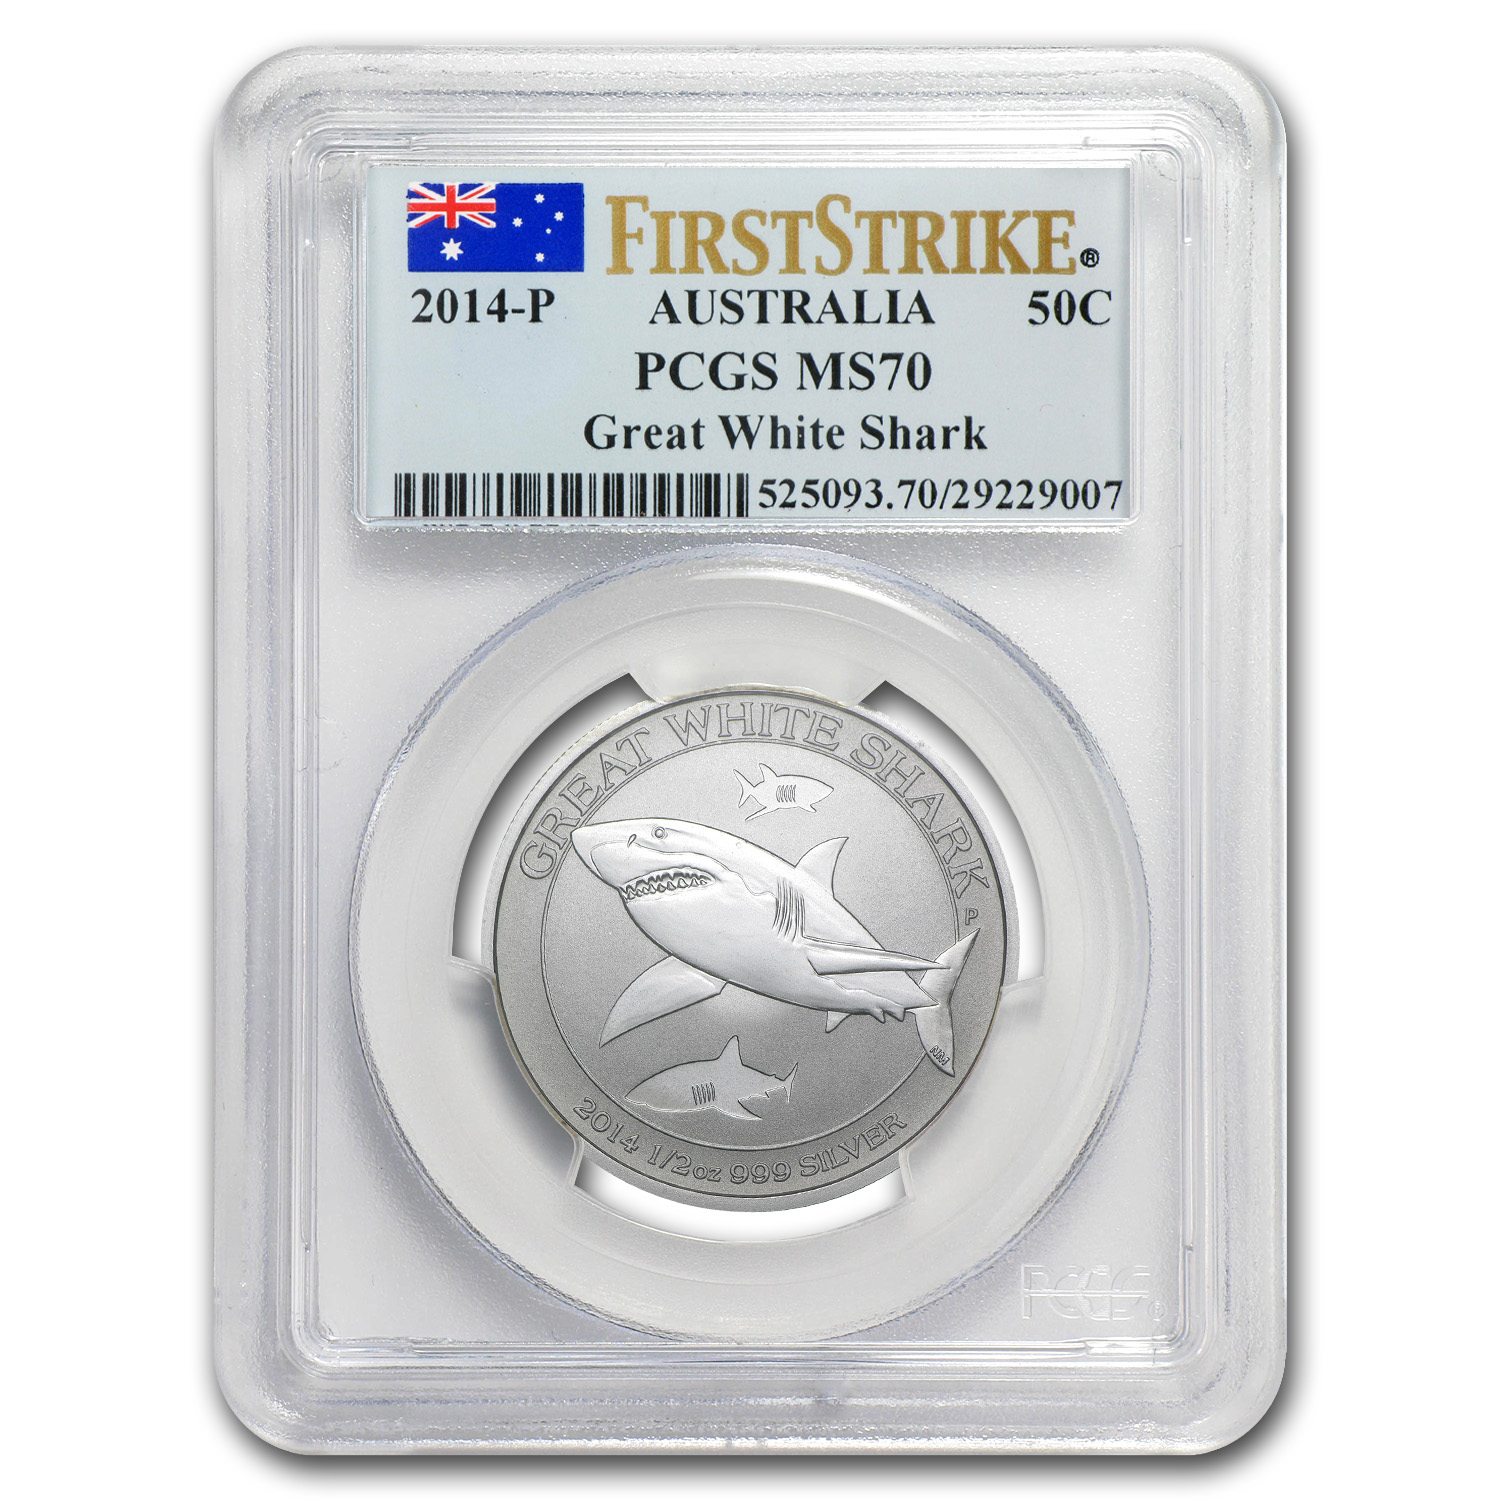 2014 1/2 oz Silver Australian Great White Shark MS-70 PCGS (FS)